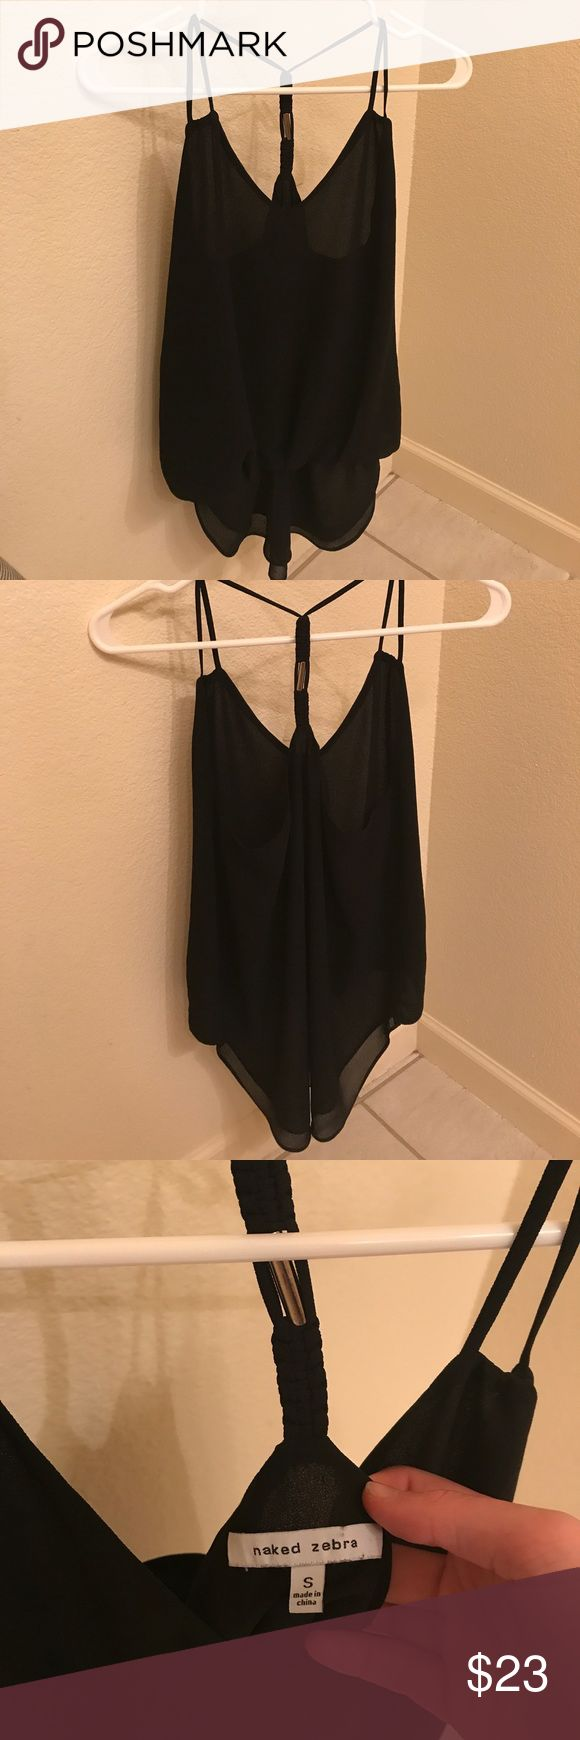 Naked Zebra Top Naked Zebra Black Strappy Top. Racerback design with an intricate braided back and metal insert. Super cute! Never worn, too small for me😝 Naked Zebra Tops